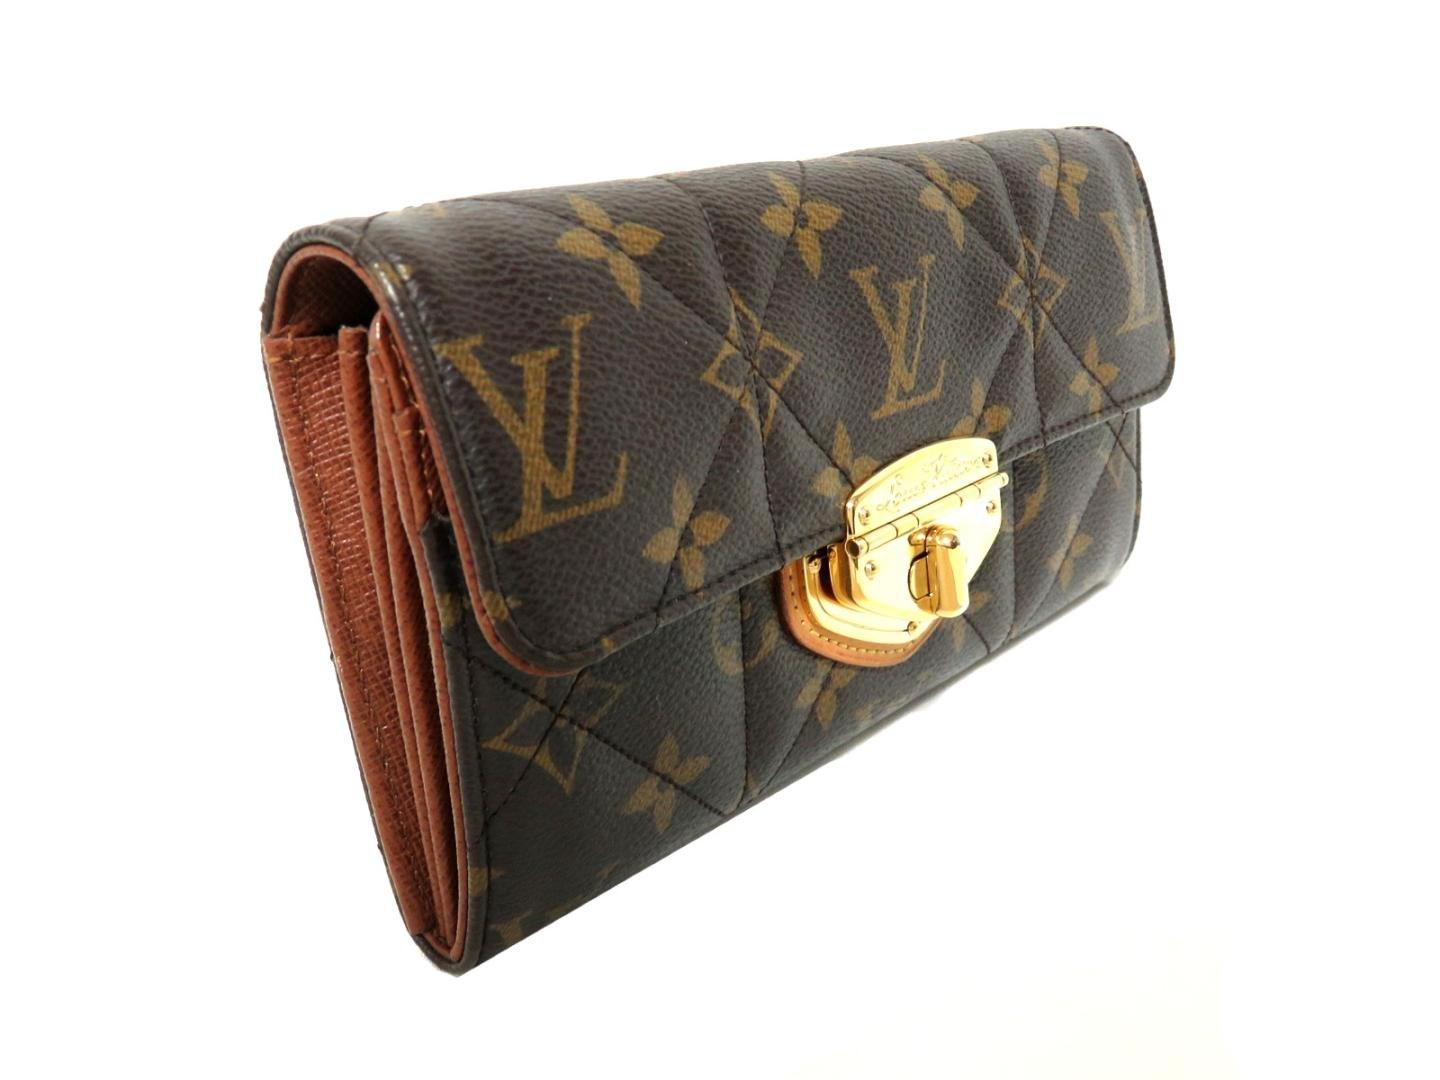 best website 3e0ed 9f3c1 Women's Brown Portefeiulle Sarah Long Wallet Monogram Etoile M66556